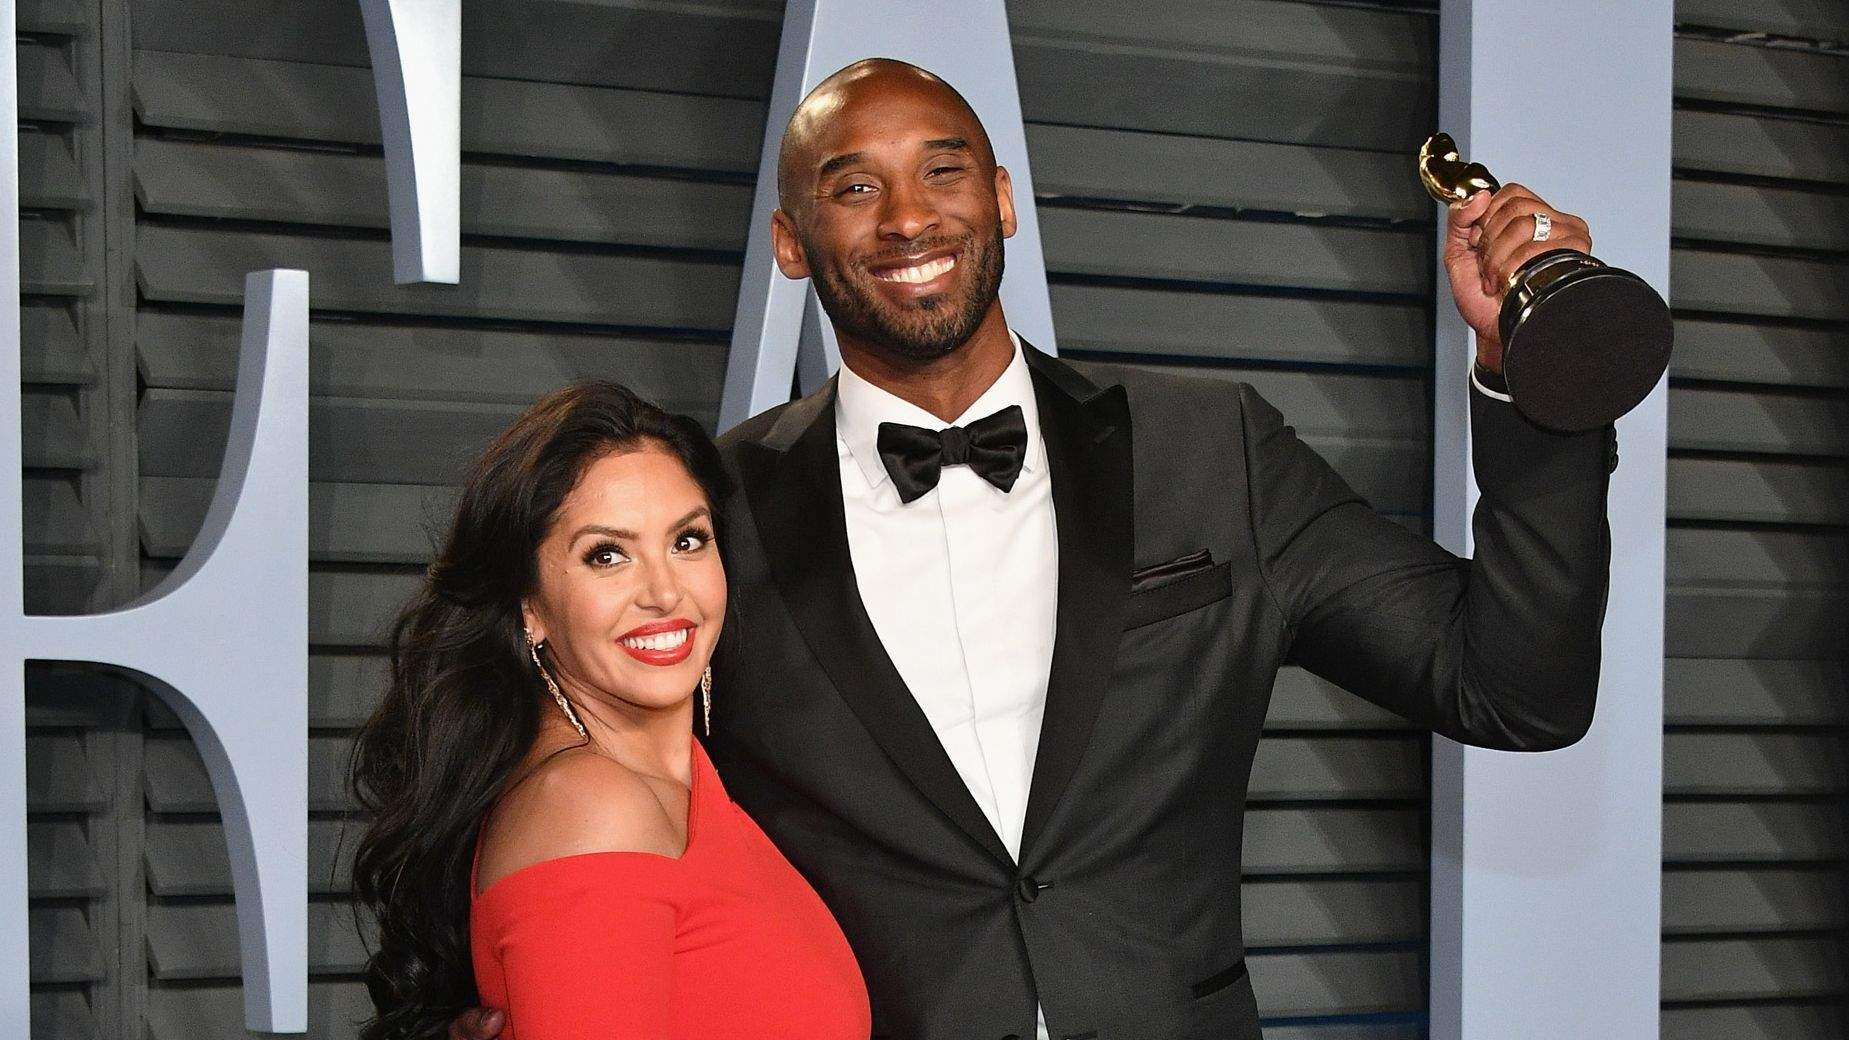 Kobe Bryant's Wife Vanessa Seeks Millions Against Wrongful Lawsuit